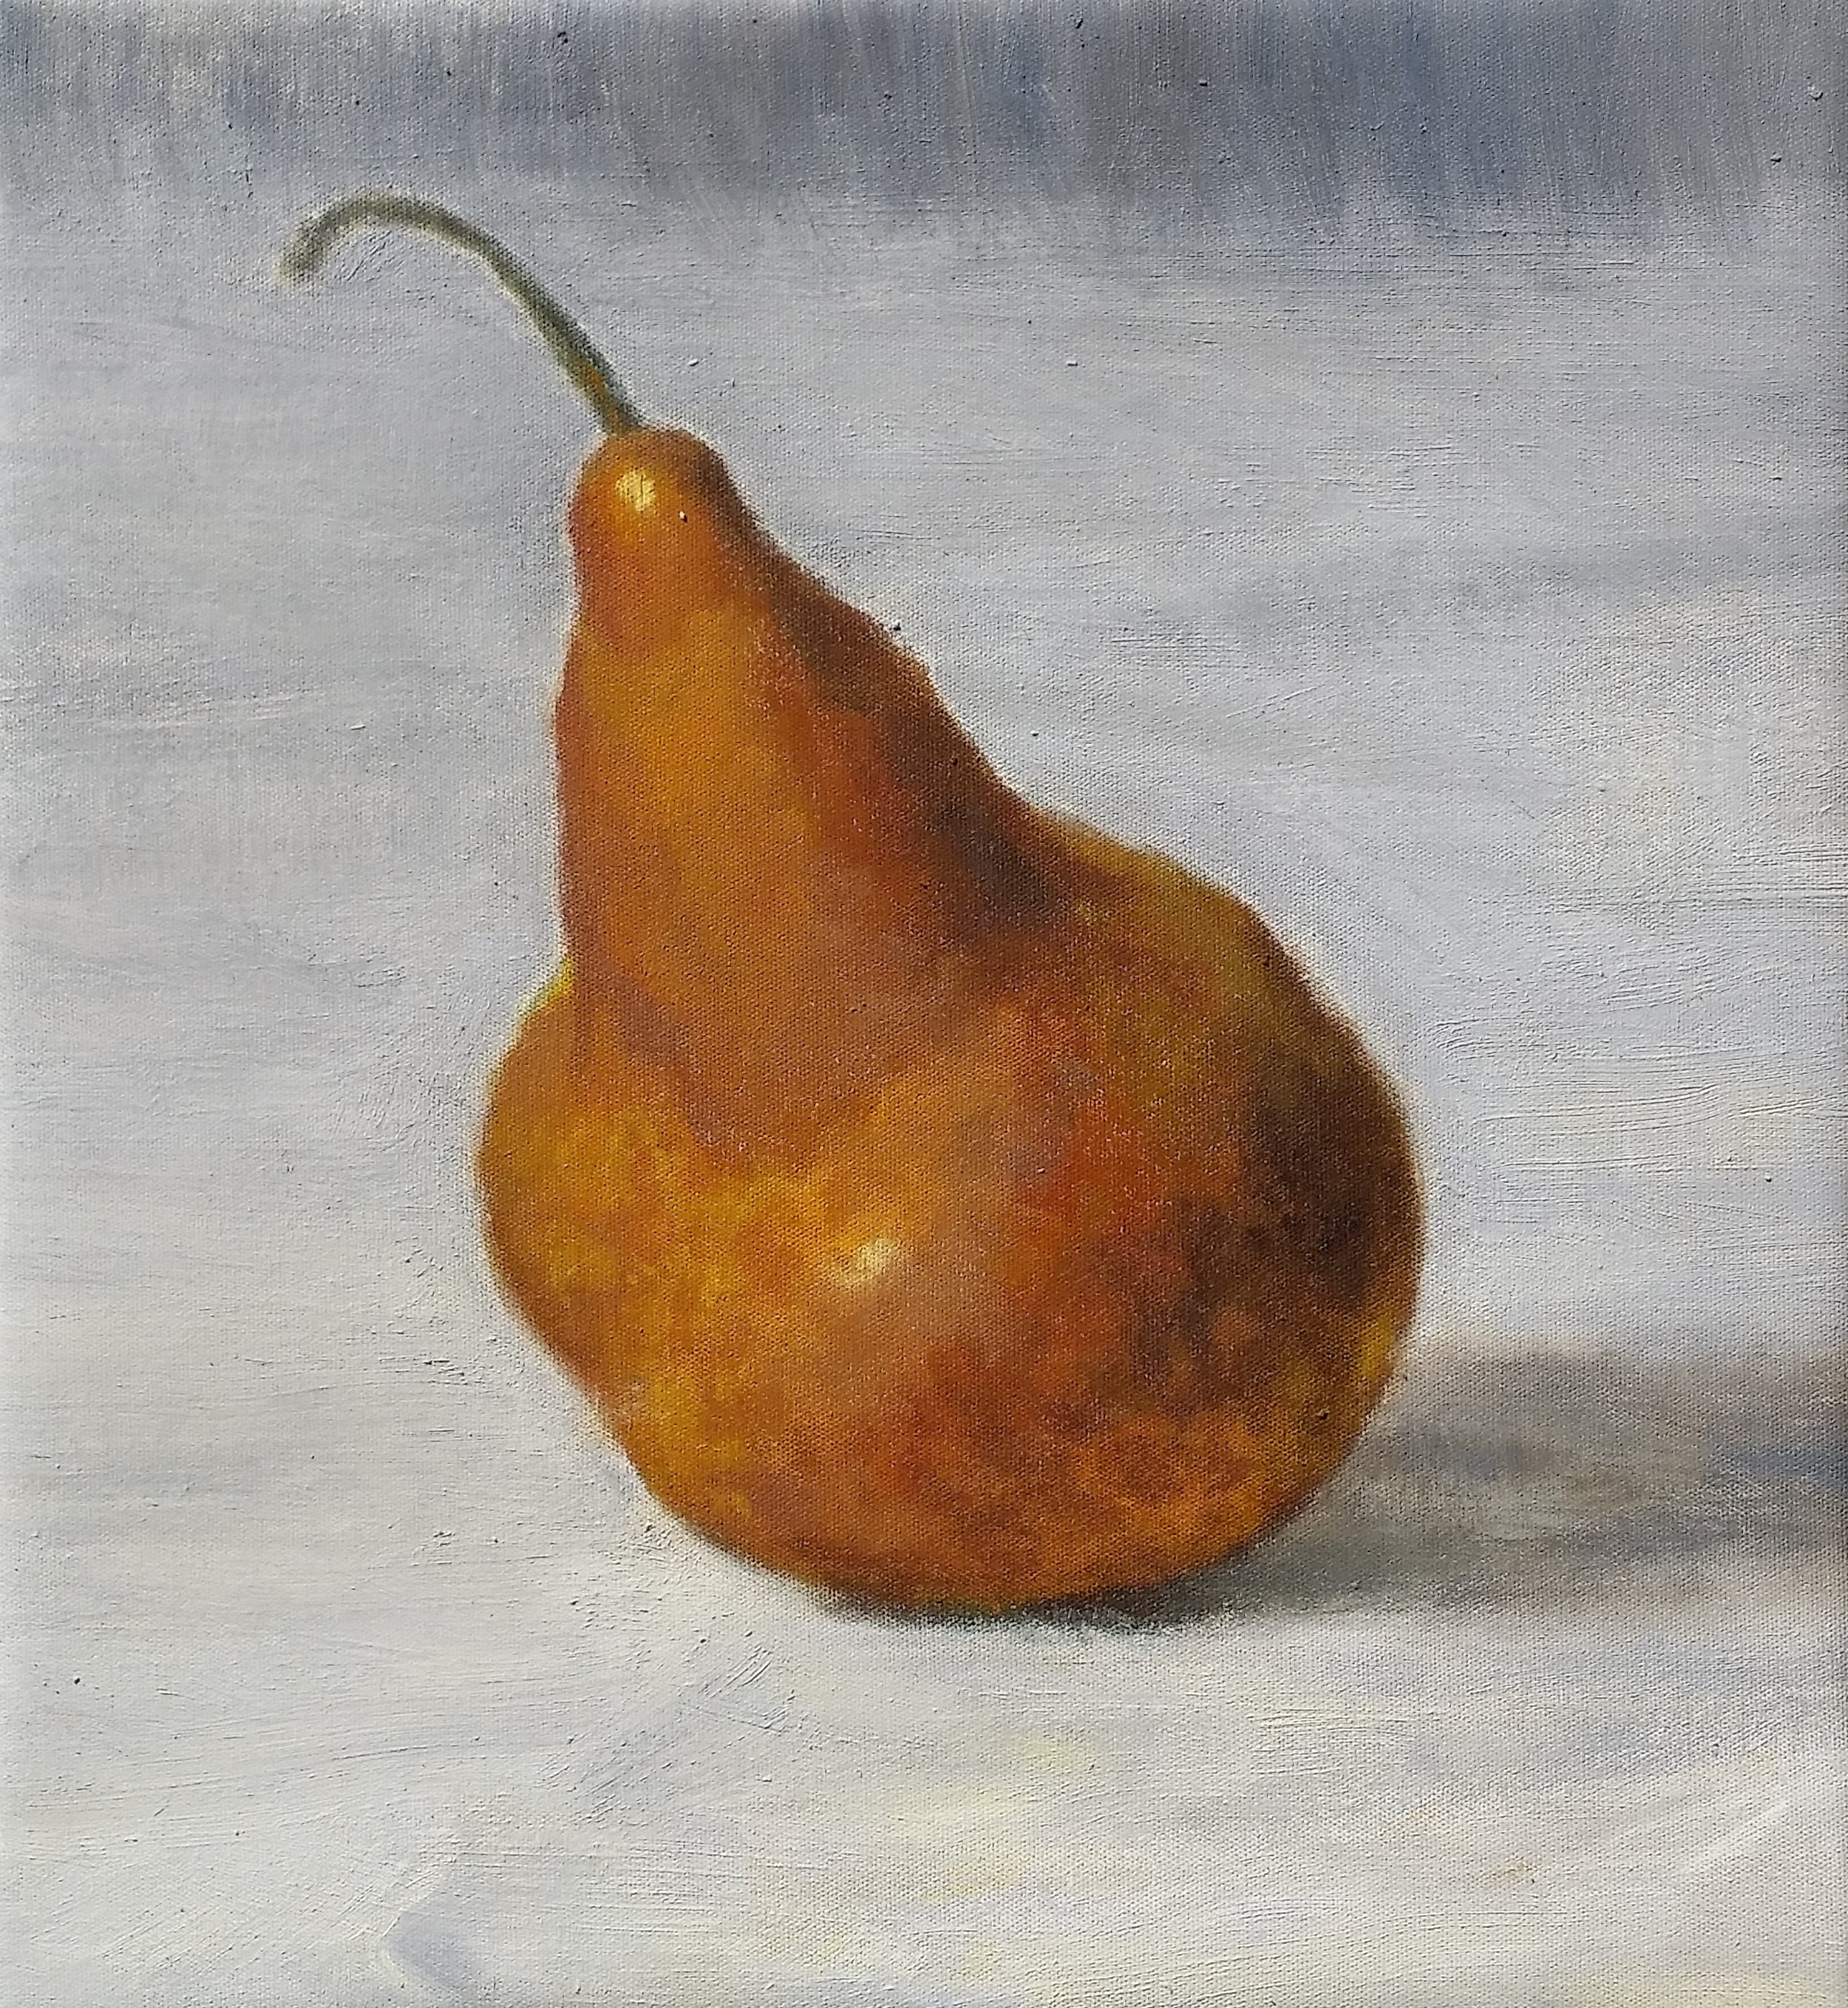 Pear,brown,oil.jpg